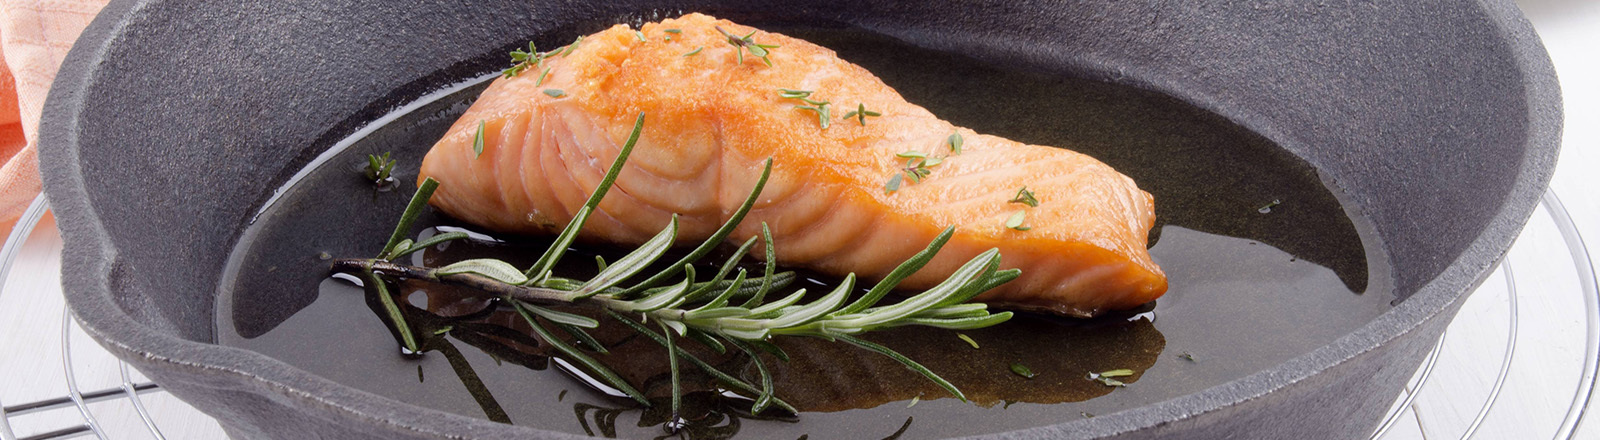 Grilled Salmon Fillet With Thyme, Rosemary And Olive Oil In A Cast Iron Pan